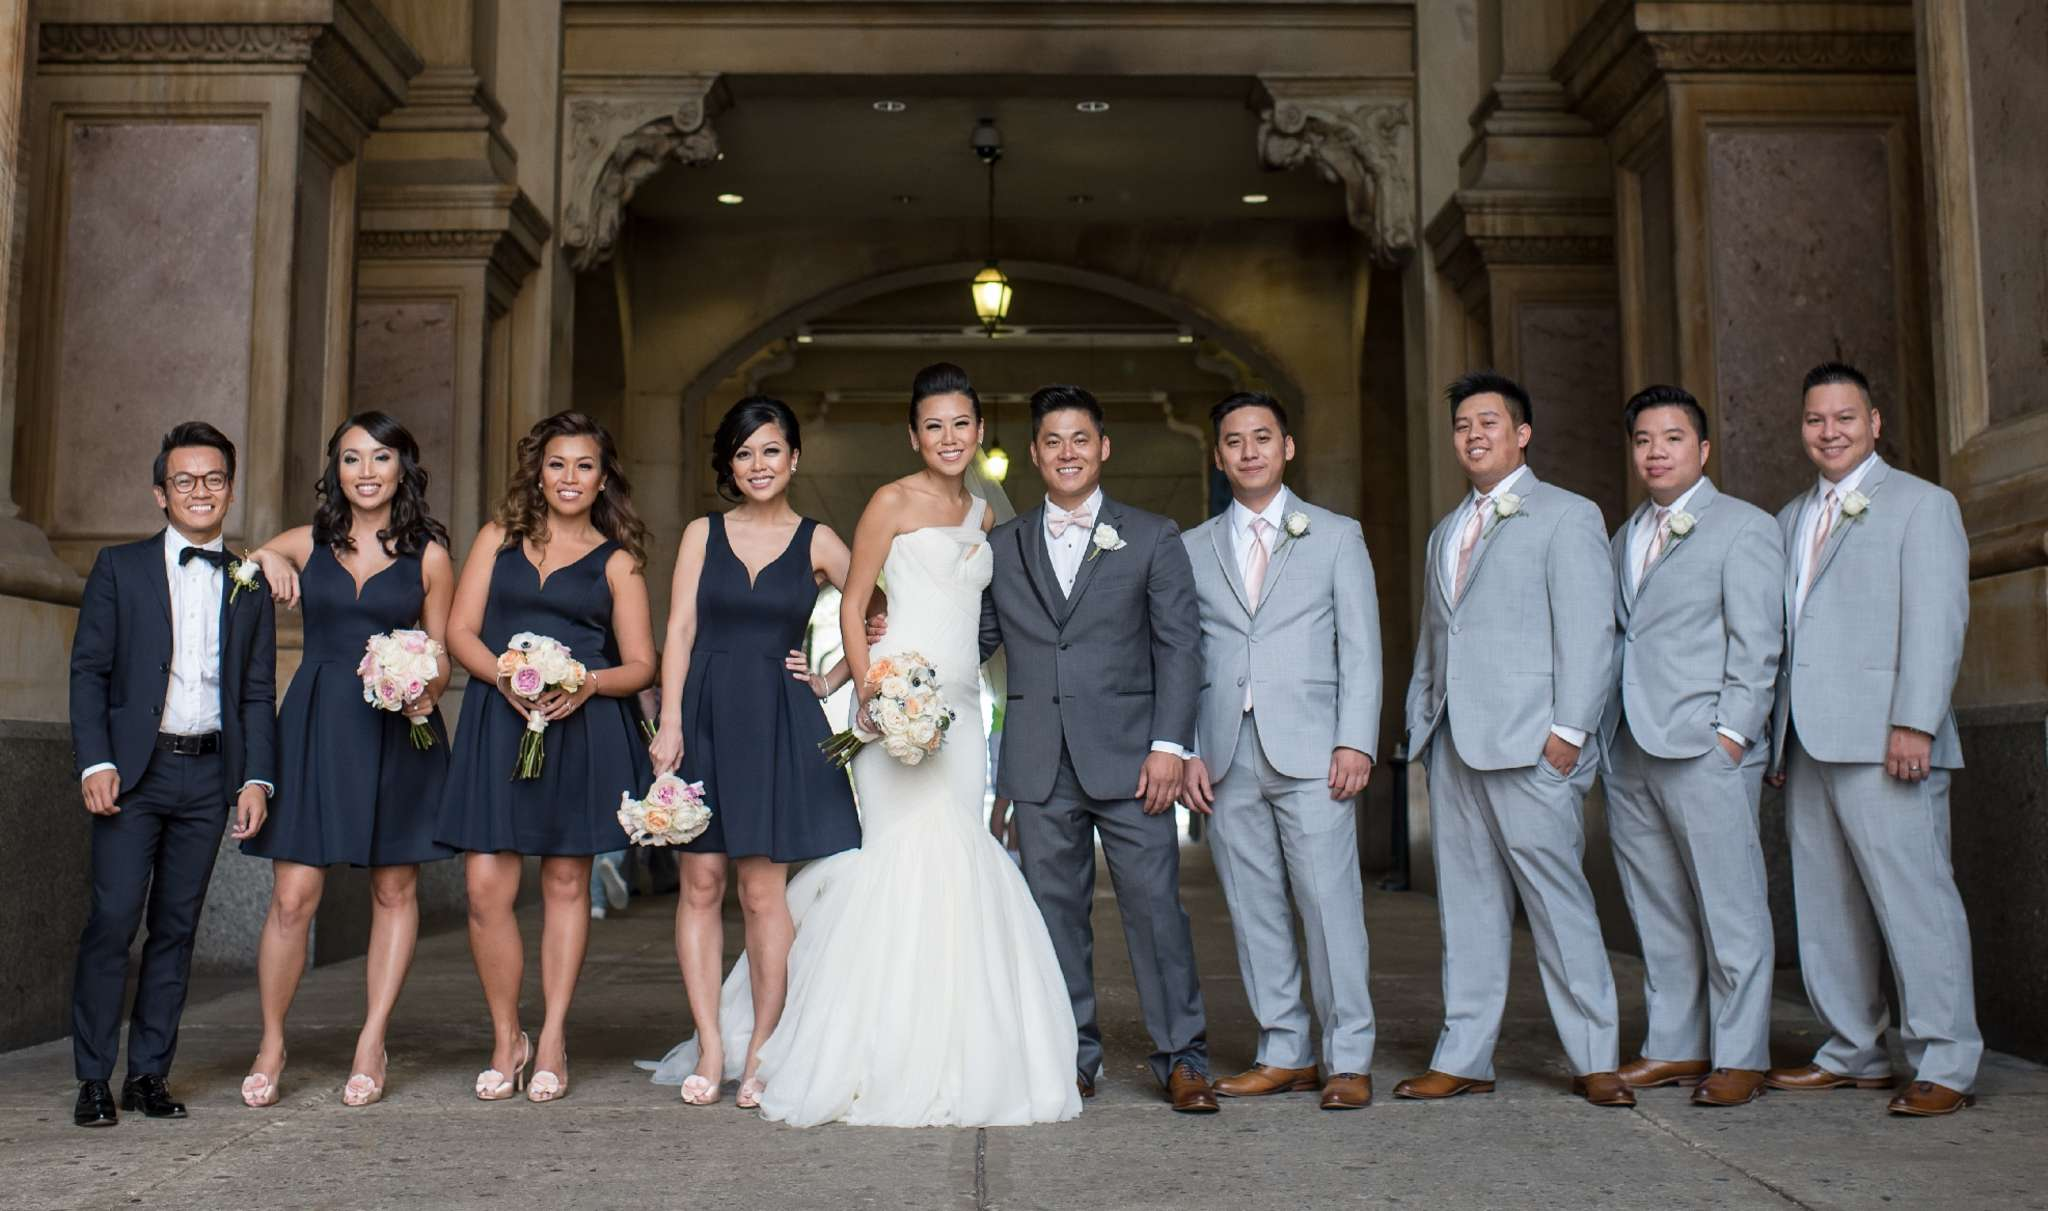 Wedding attendants with the couple: (from left) Tony Le, Le Tran Notarfrancesco, Annette Tran, Holly Do Nguyen, Trang Do, Kevin Nguyen, Chau Nguyen, Cong Nguyen, Darius Nguyen, and Steve Nguyen.